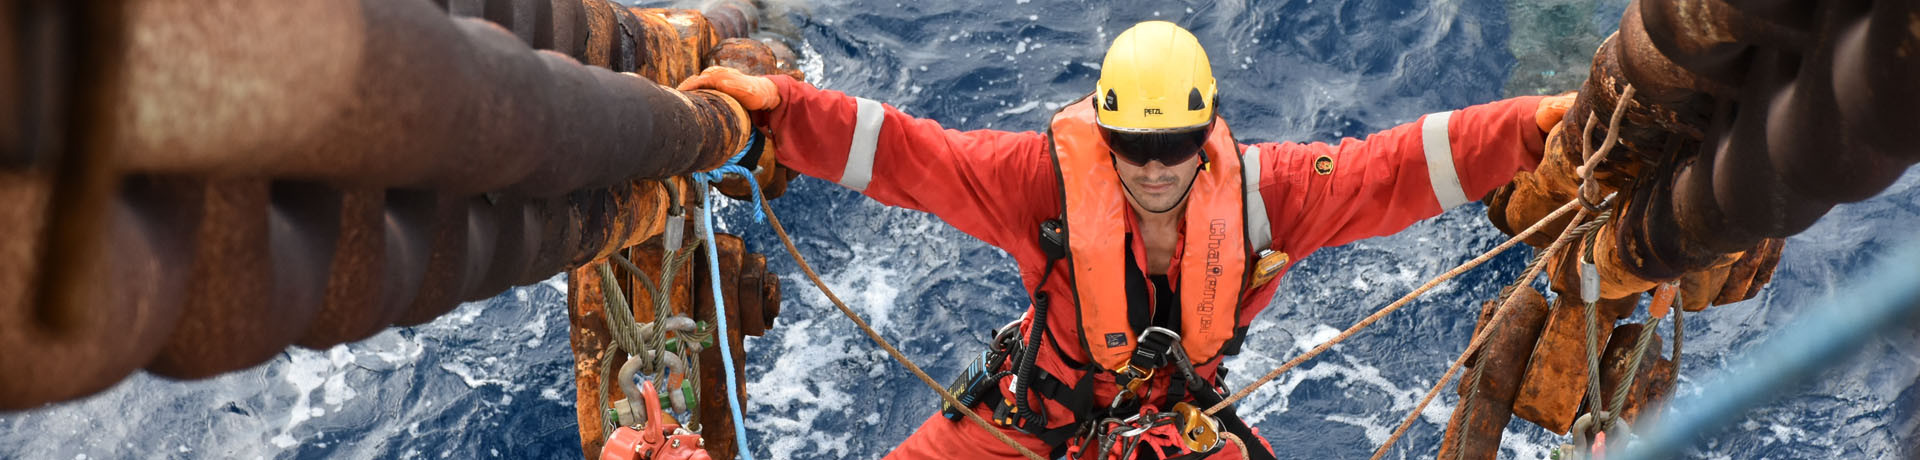 A rope access technician carries out regulatory checks